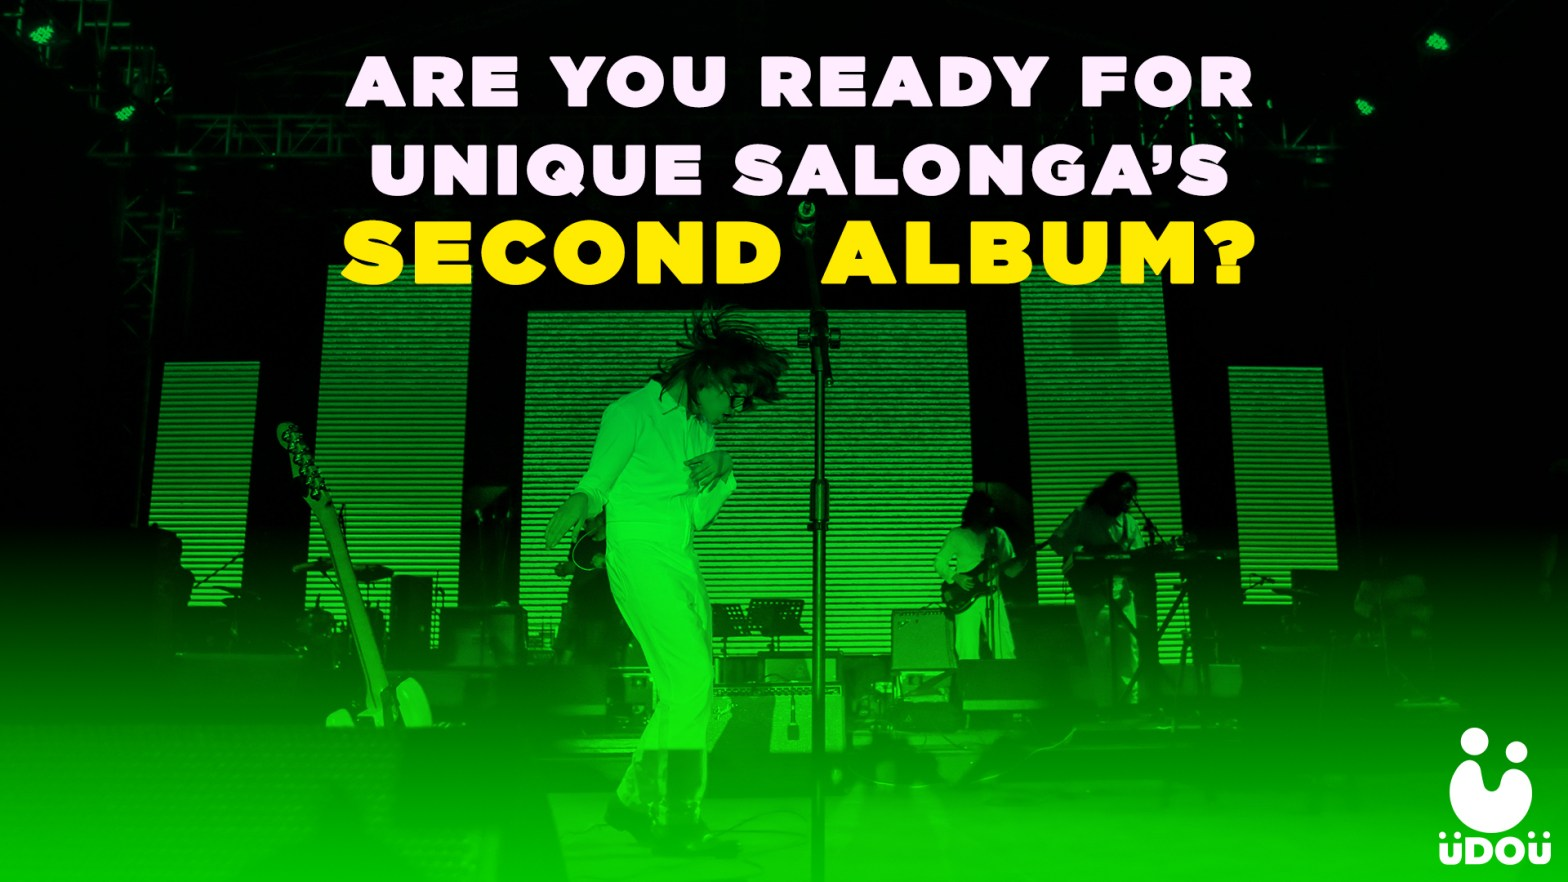 Unique-Salonga-second-album-OPM-.jpeg